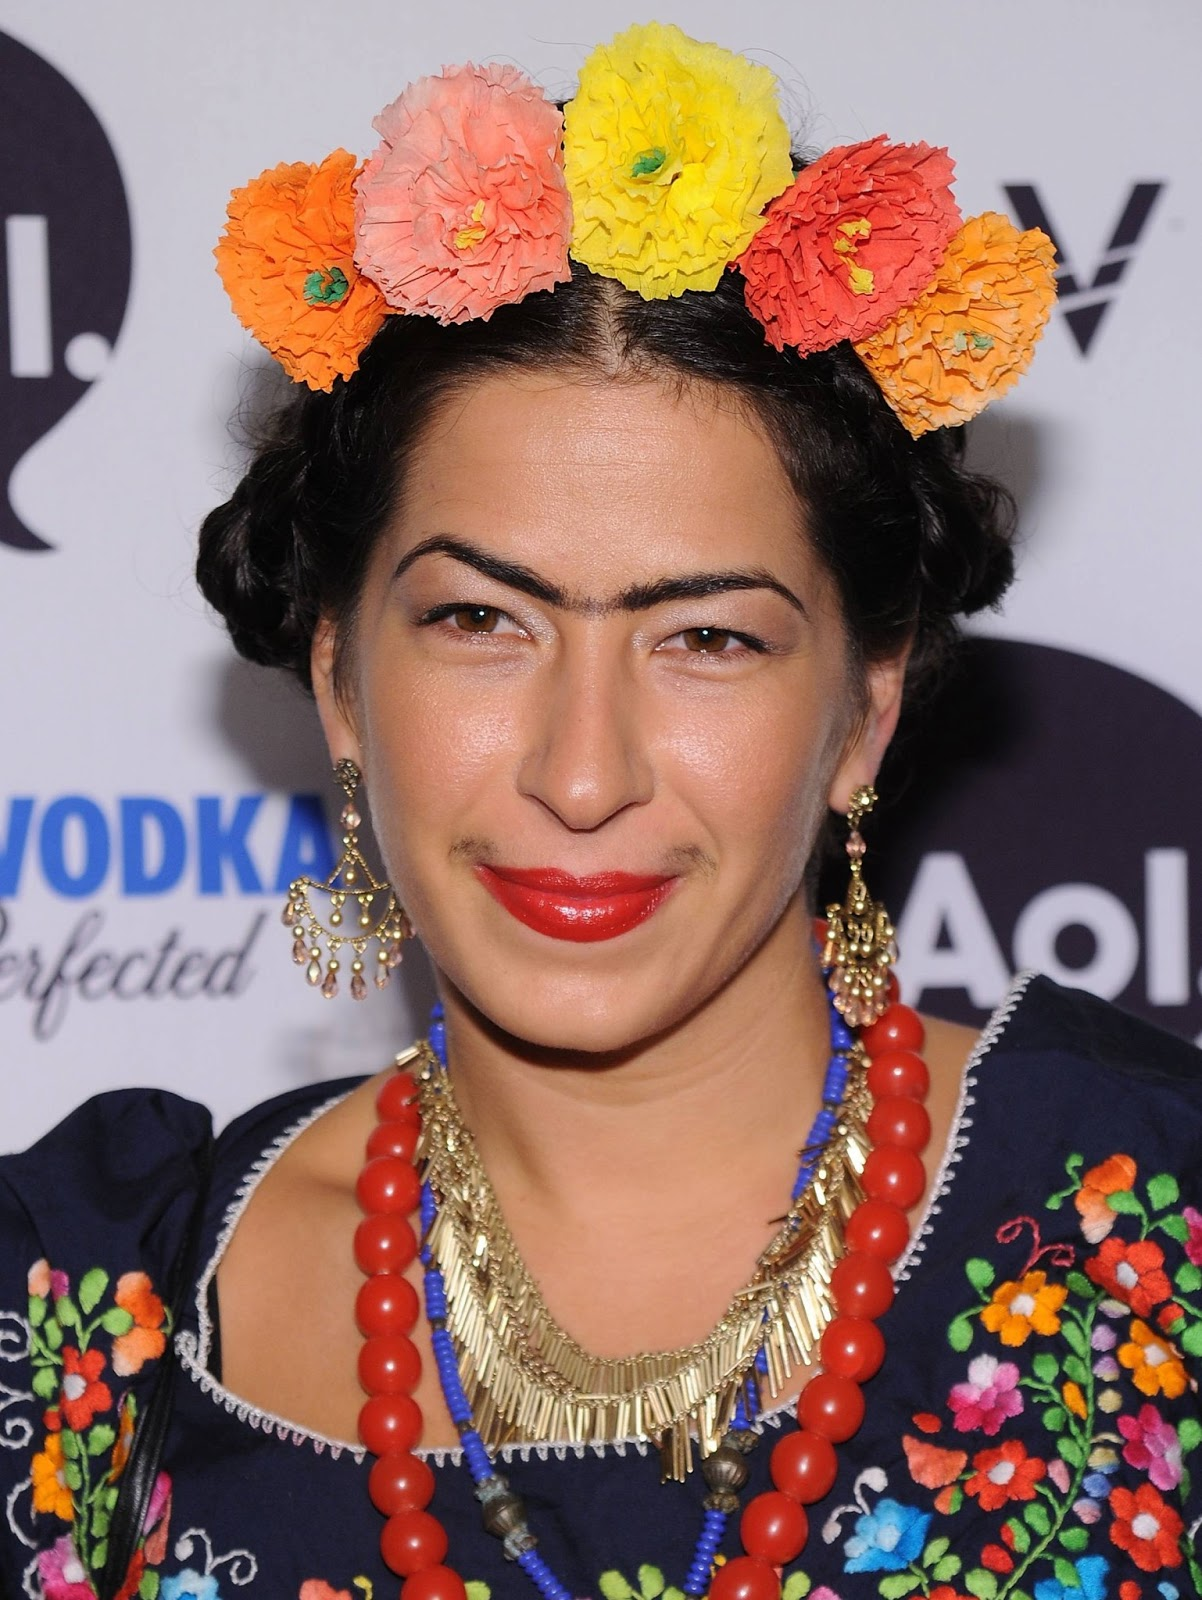 point lace: Fashion inspiration- frida kahlo